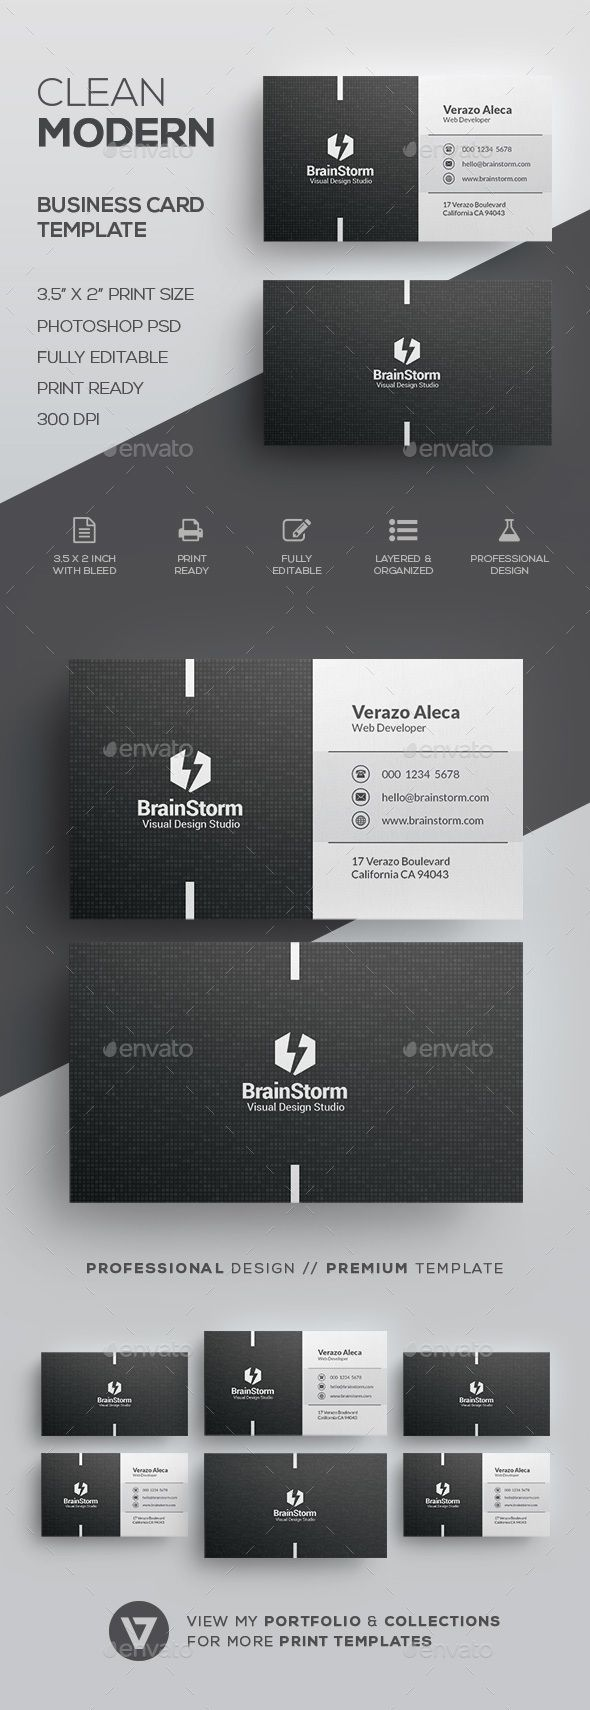 Clean Business Card Template - Corporate Business Cards Download here: https://graphicriver.net/item/clean-business-card-template/19977034?ref=classicdesignp